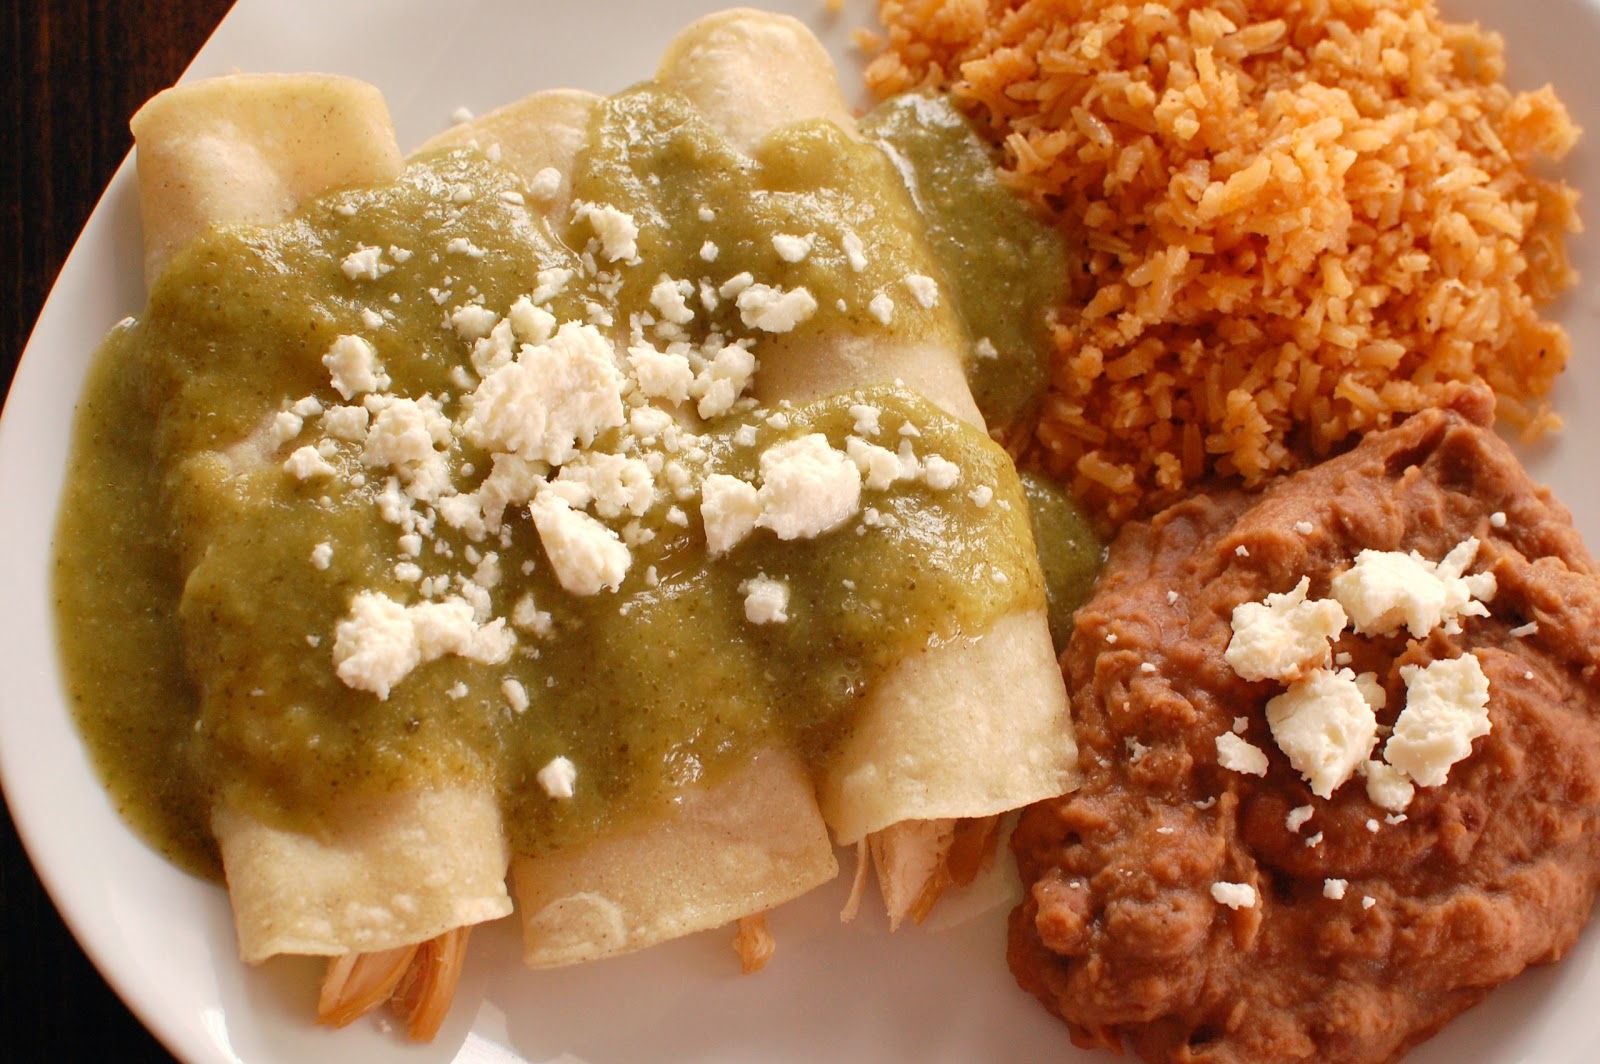 Enchiladas verdes de pollo authentic mexican super easy or so and as long as you have the stuffits super easy remember how we talked about cooking lots of chicken in the crock pot shredding and freezing it in forumfinder Images